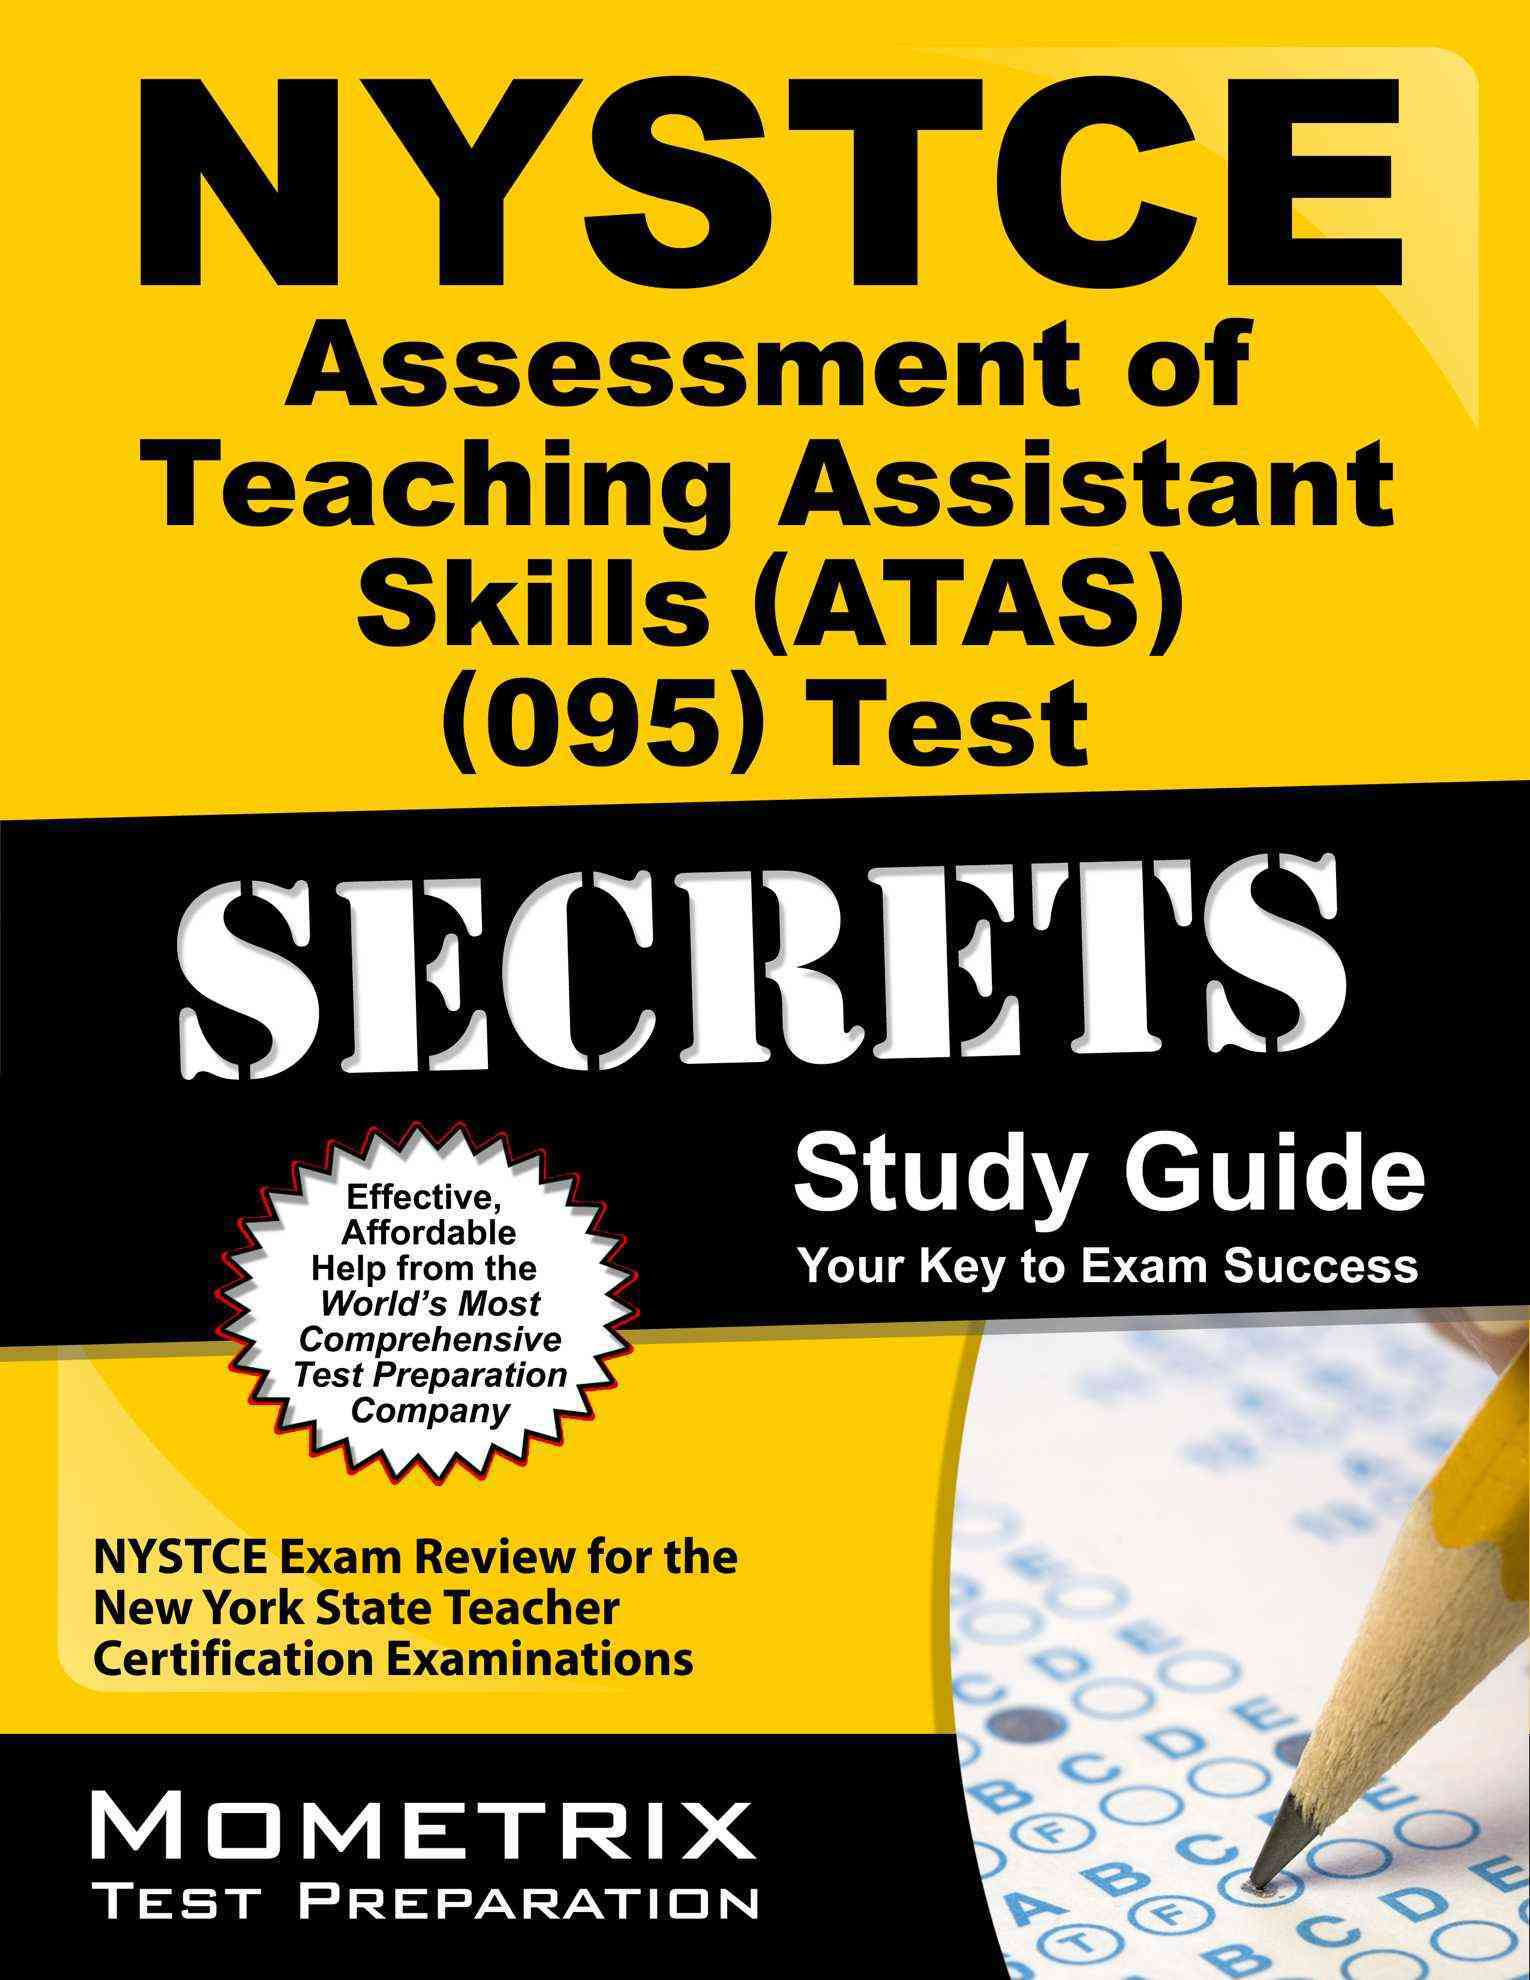 Nystce Assessment of Teaching Assistant Skills Atas 095 Test: NYSTCE Exam Review for the New York State Teacher C... (Paperback)